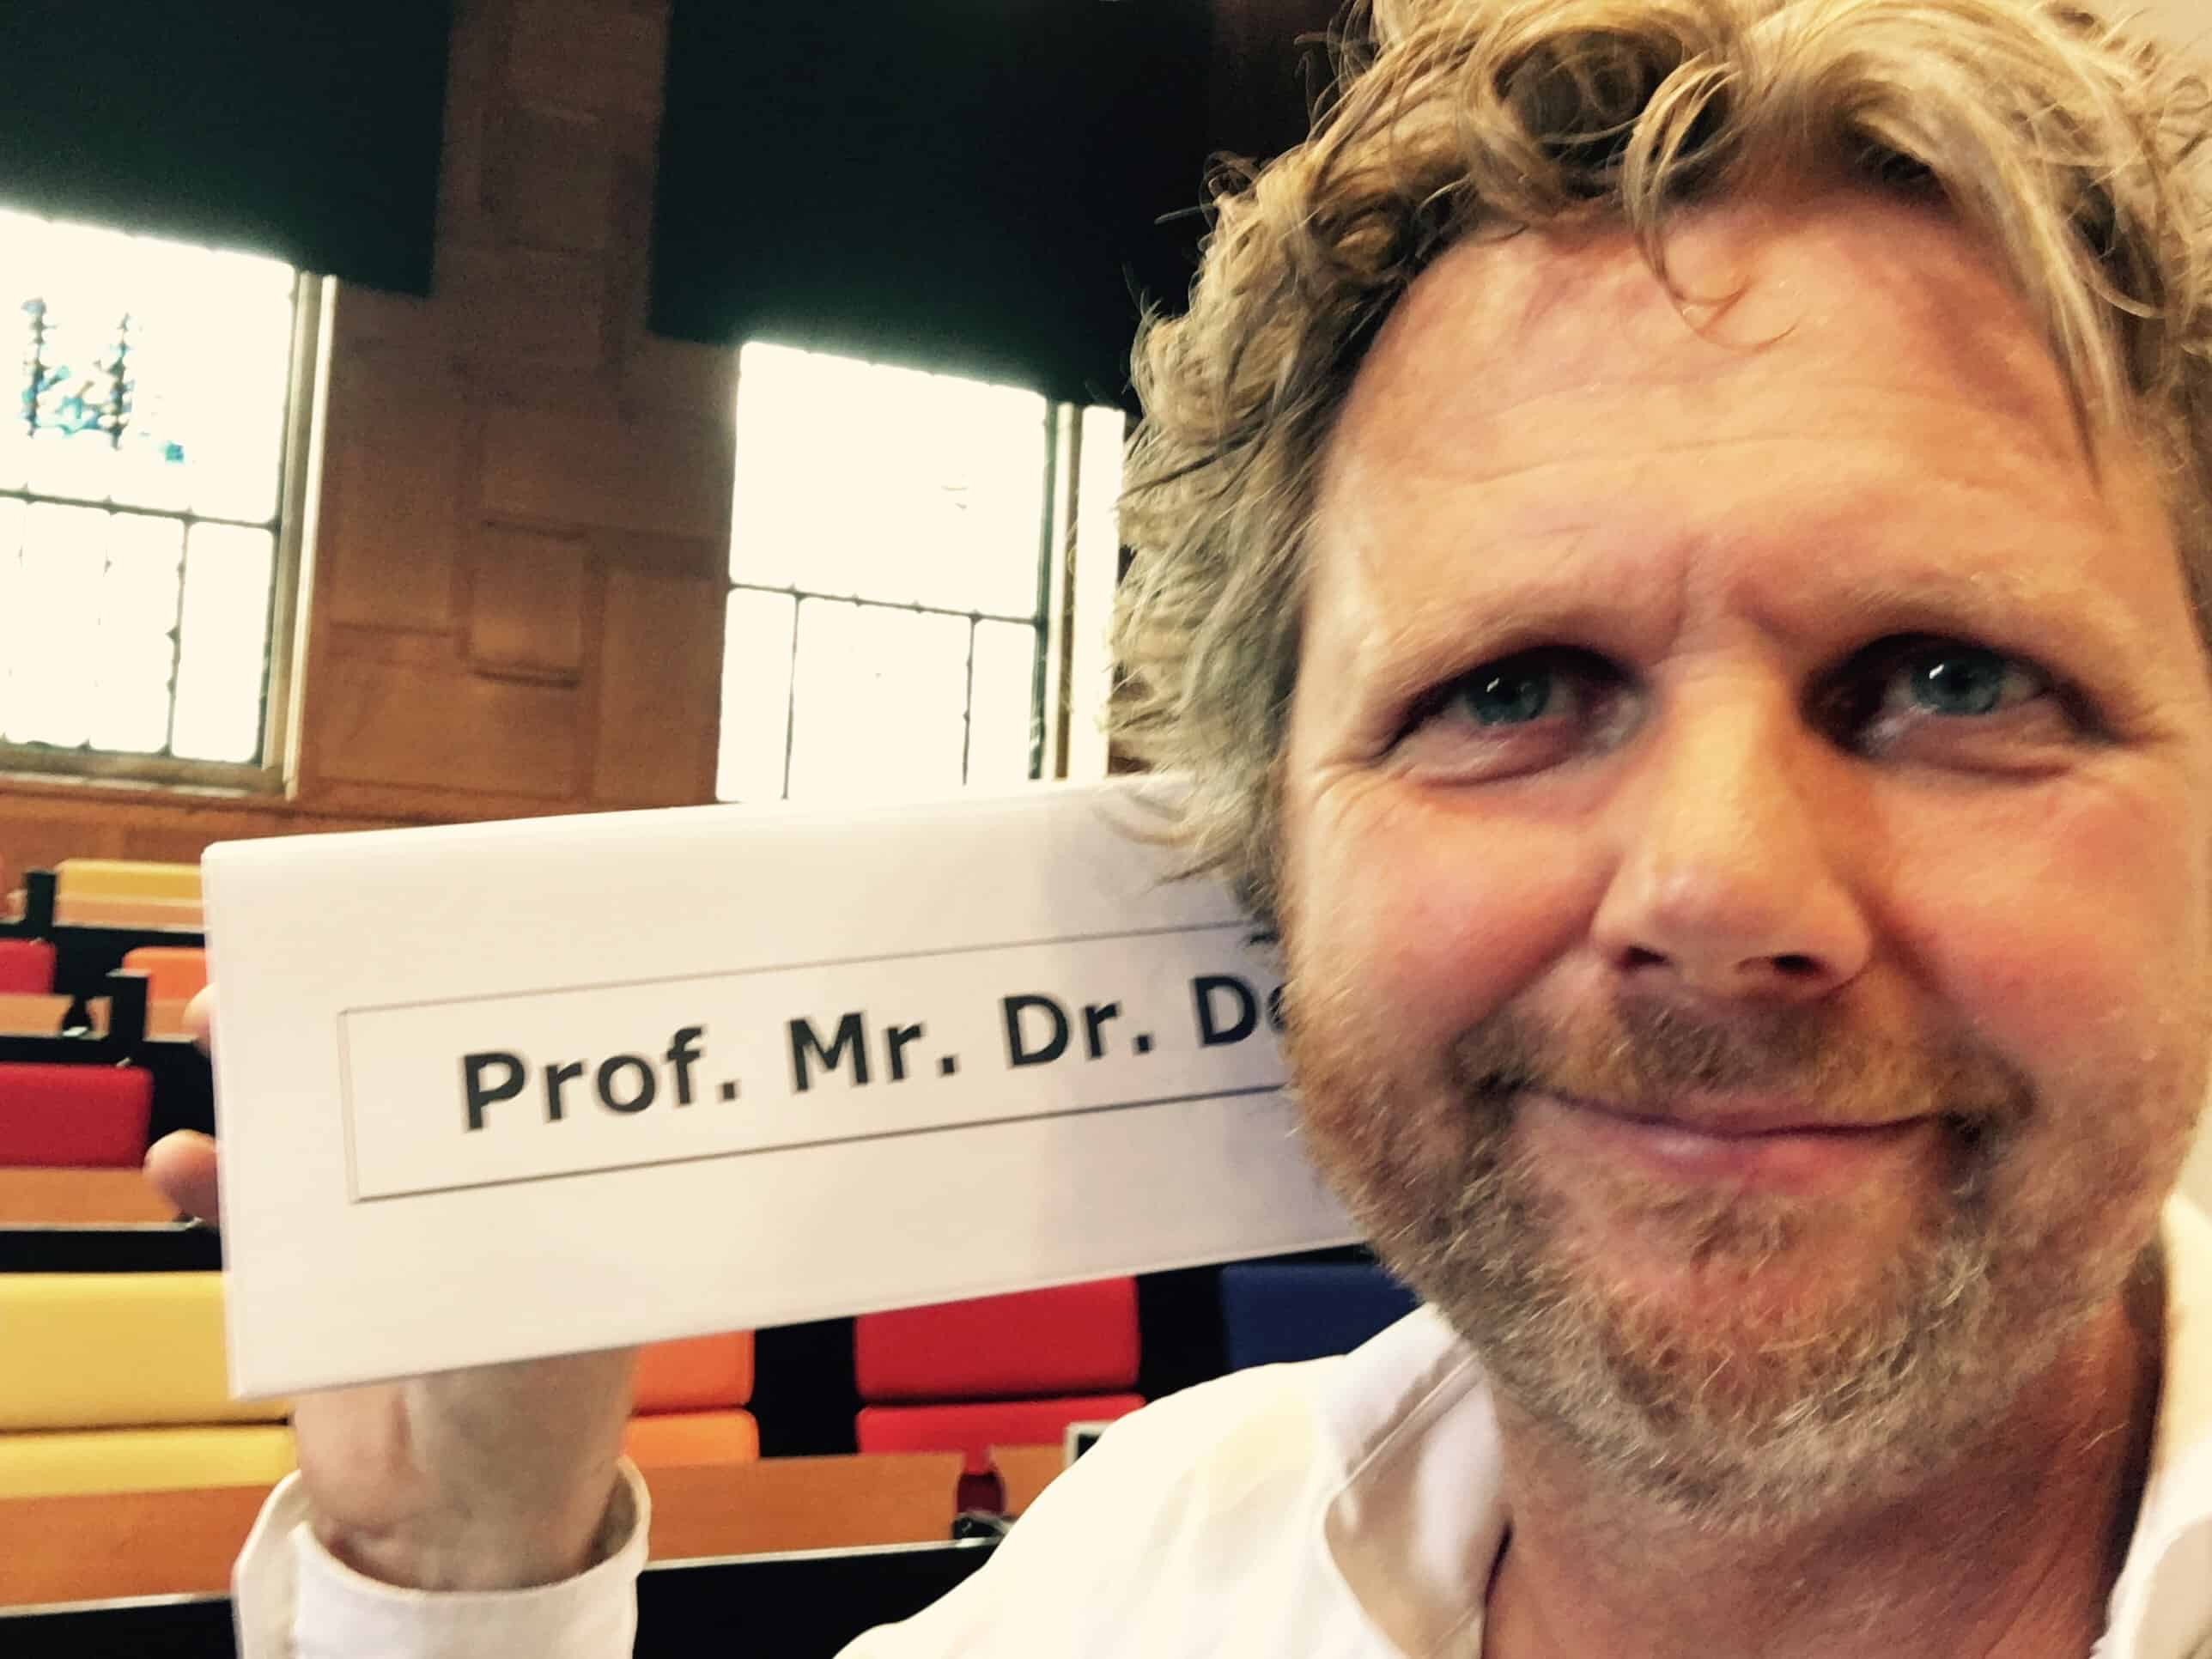 Professor Mr Dr